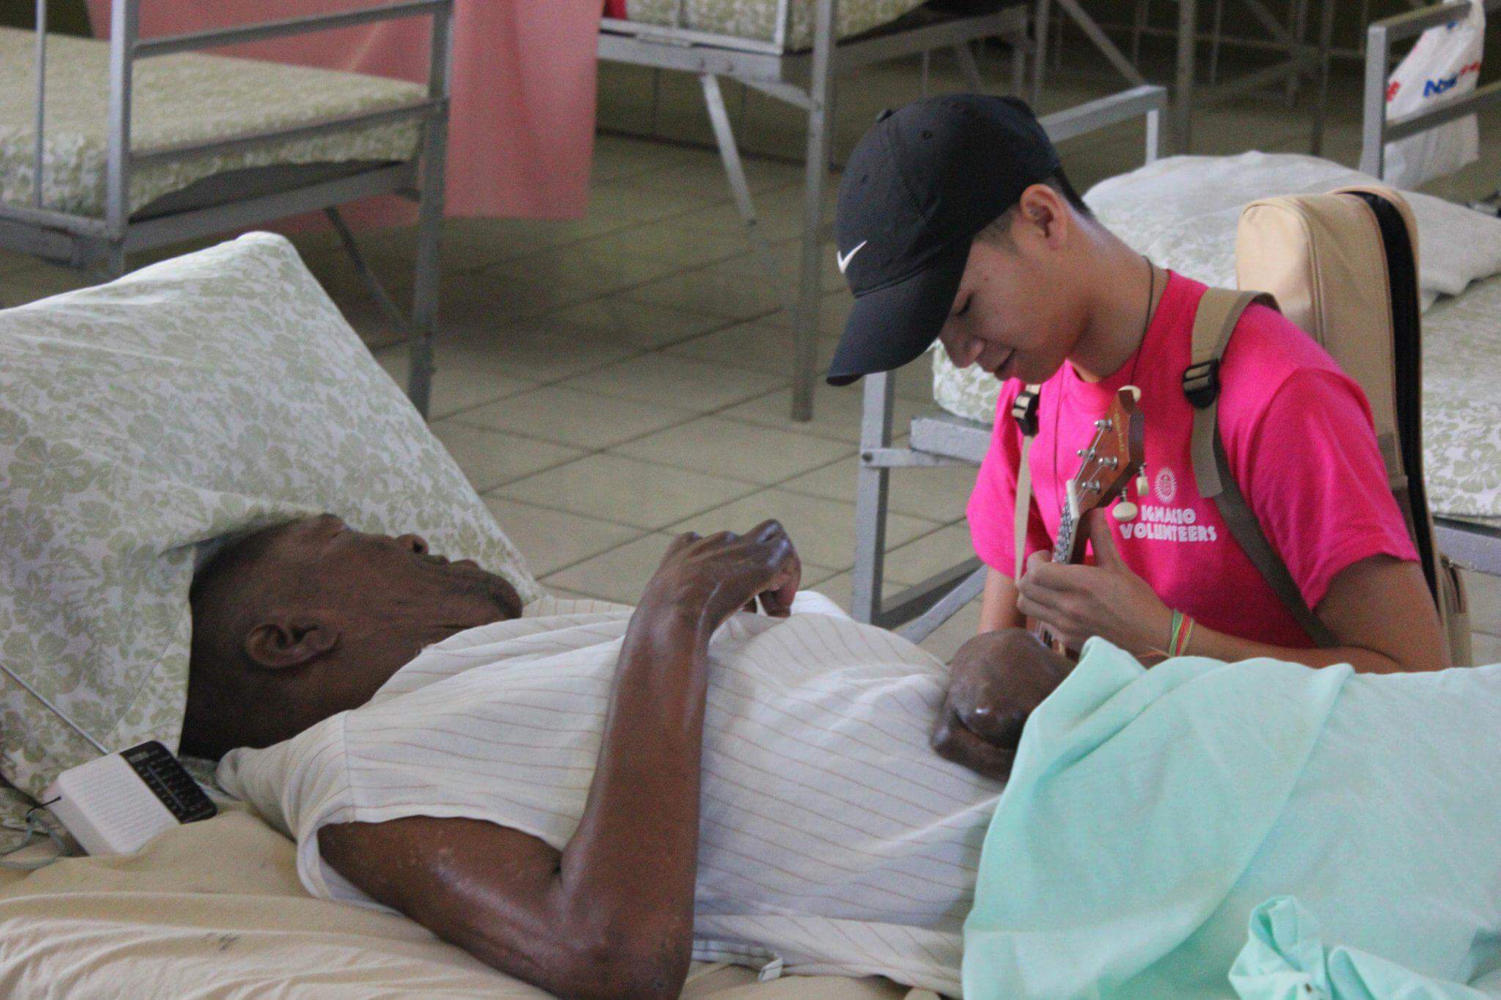 Calvin Tran, music therapy senior, plays ukulele for a patient at St. Teresa's Home for the Destitute and Dying in Kingston, Jamaica, during the Ignacio Volunteer trip December 2017. Photo credit: Lily Cummings